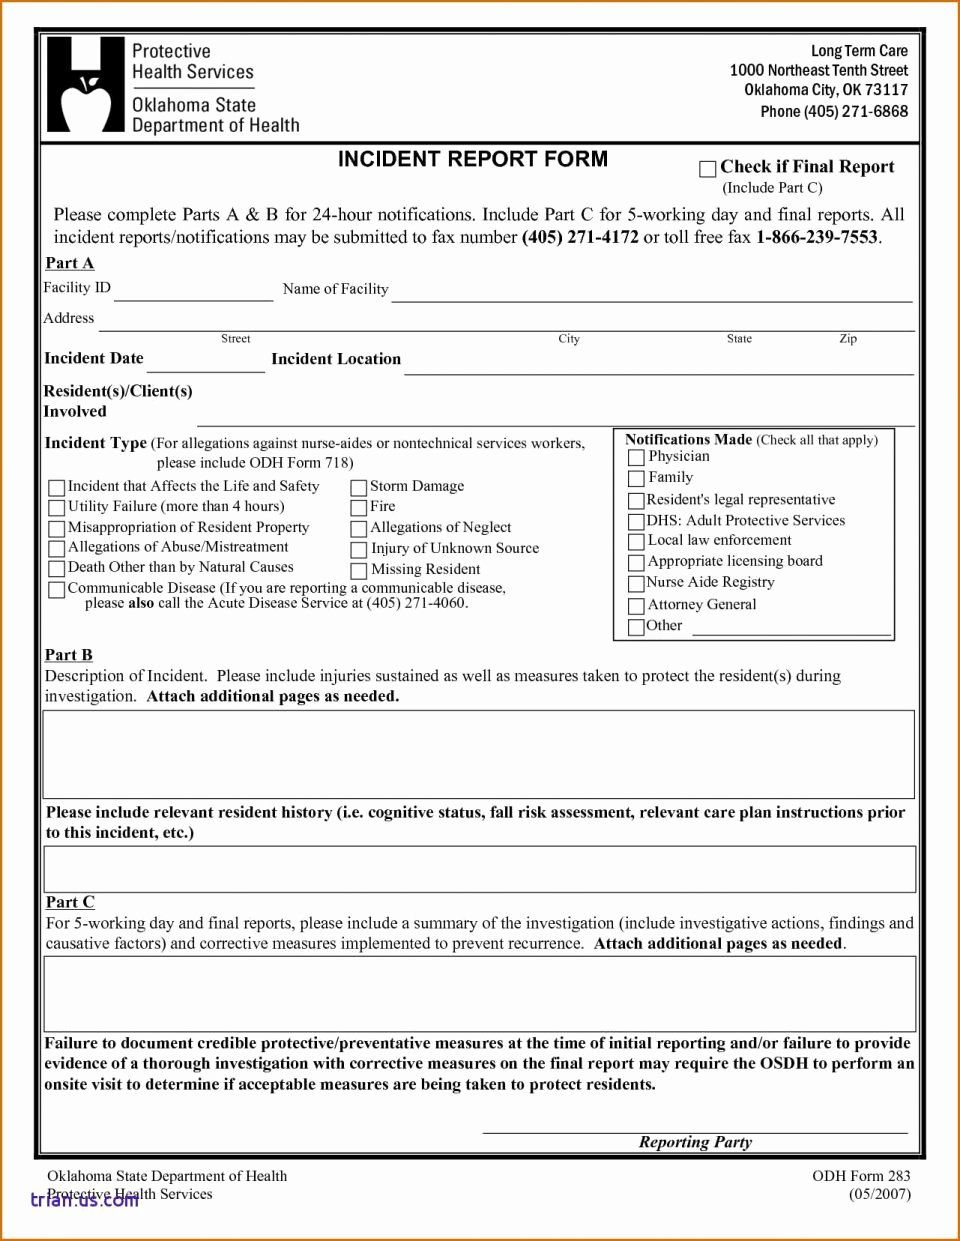 Vehicle Accident Report Form Template Luxury Accident Report Form Template Word Uk Hse For Workplace Incident Report Form Incident Report Report Template